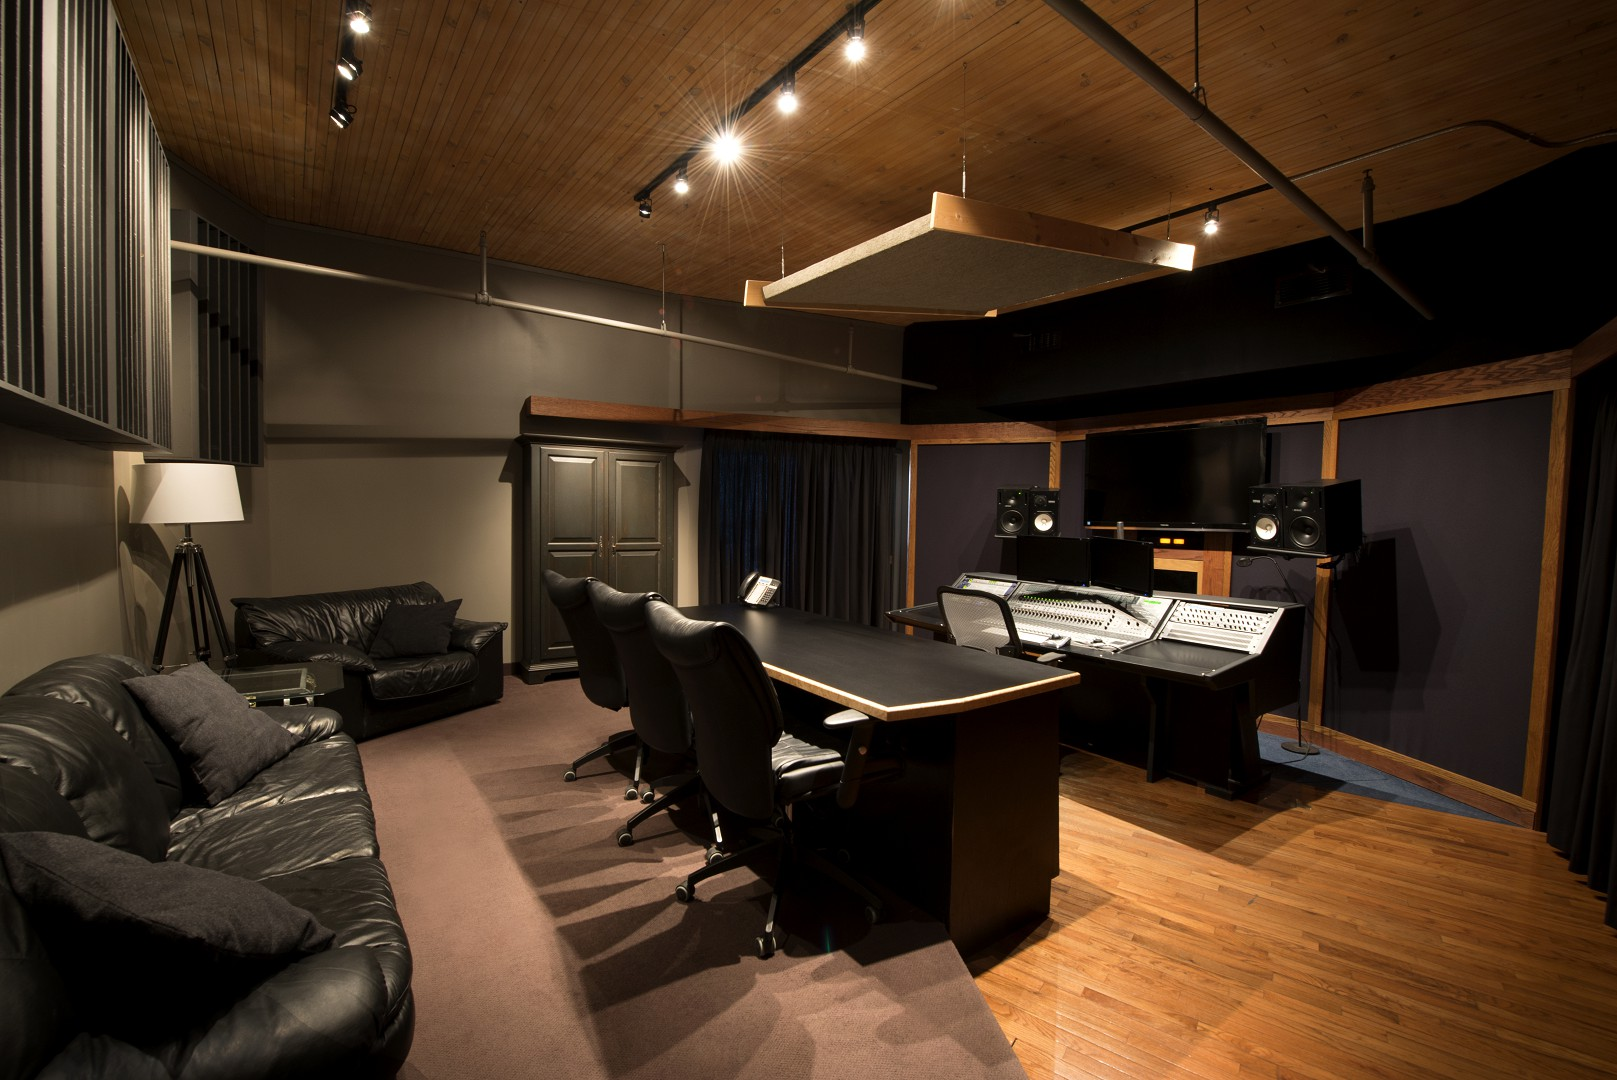 Studio1_CornerView_A_HighRes-hd.jpg